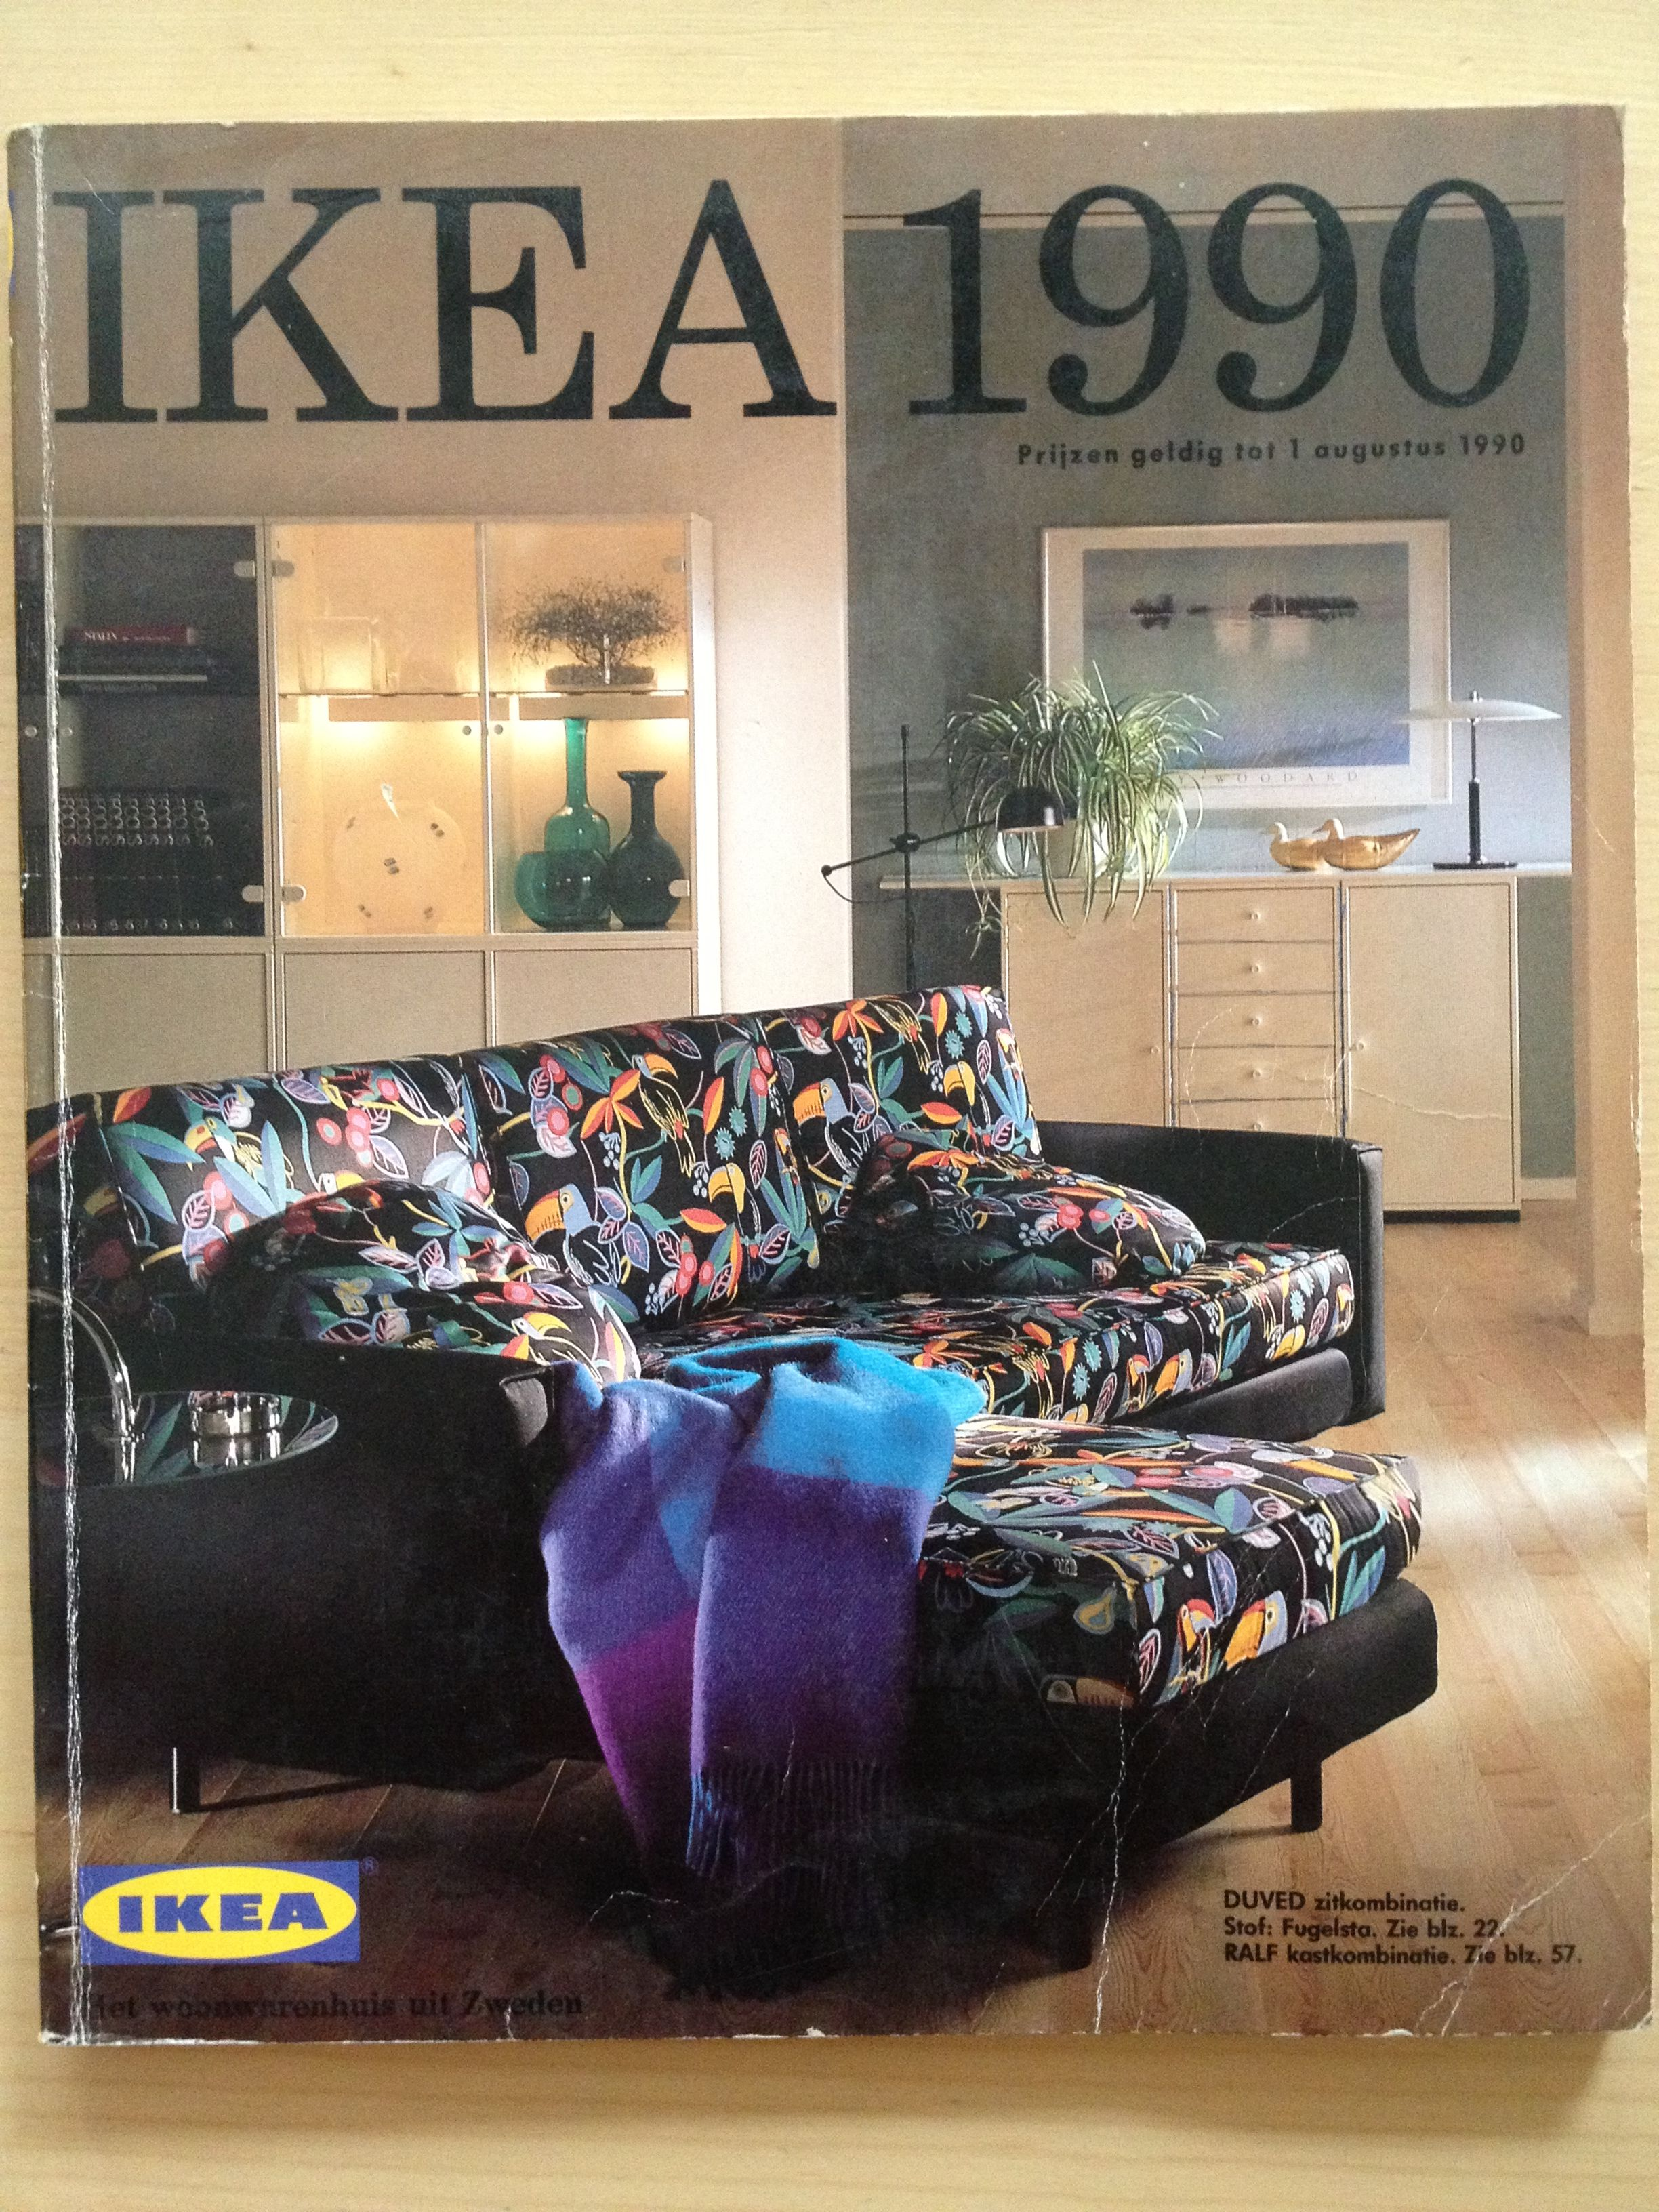 IKEA catalogue 1990 | For the home | Pinterest